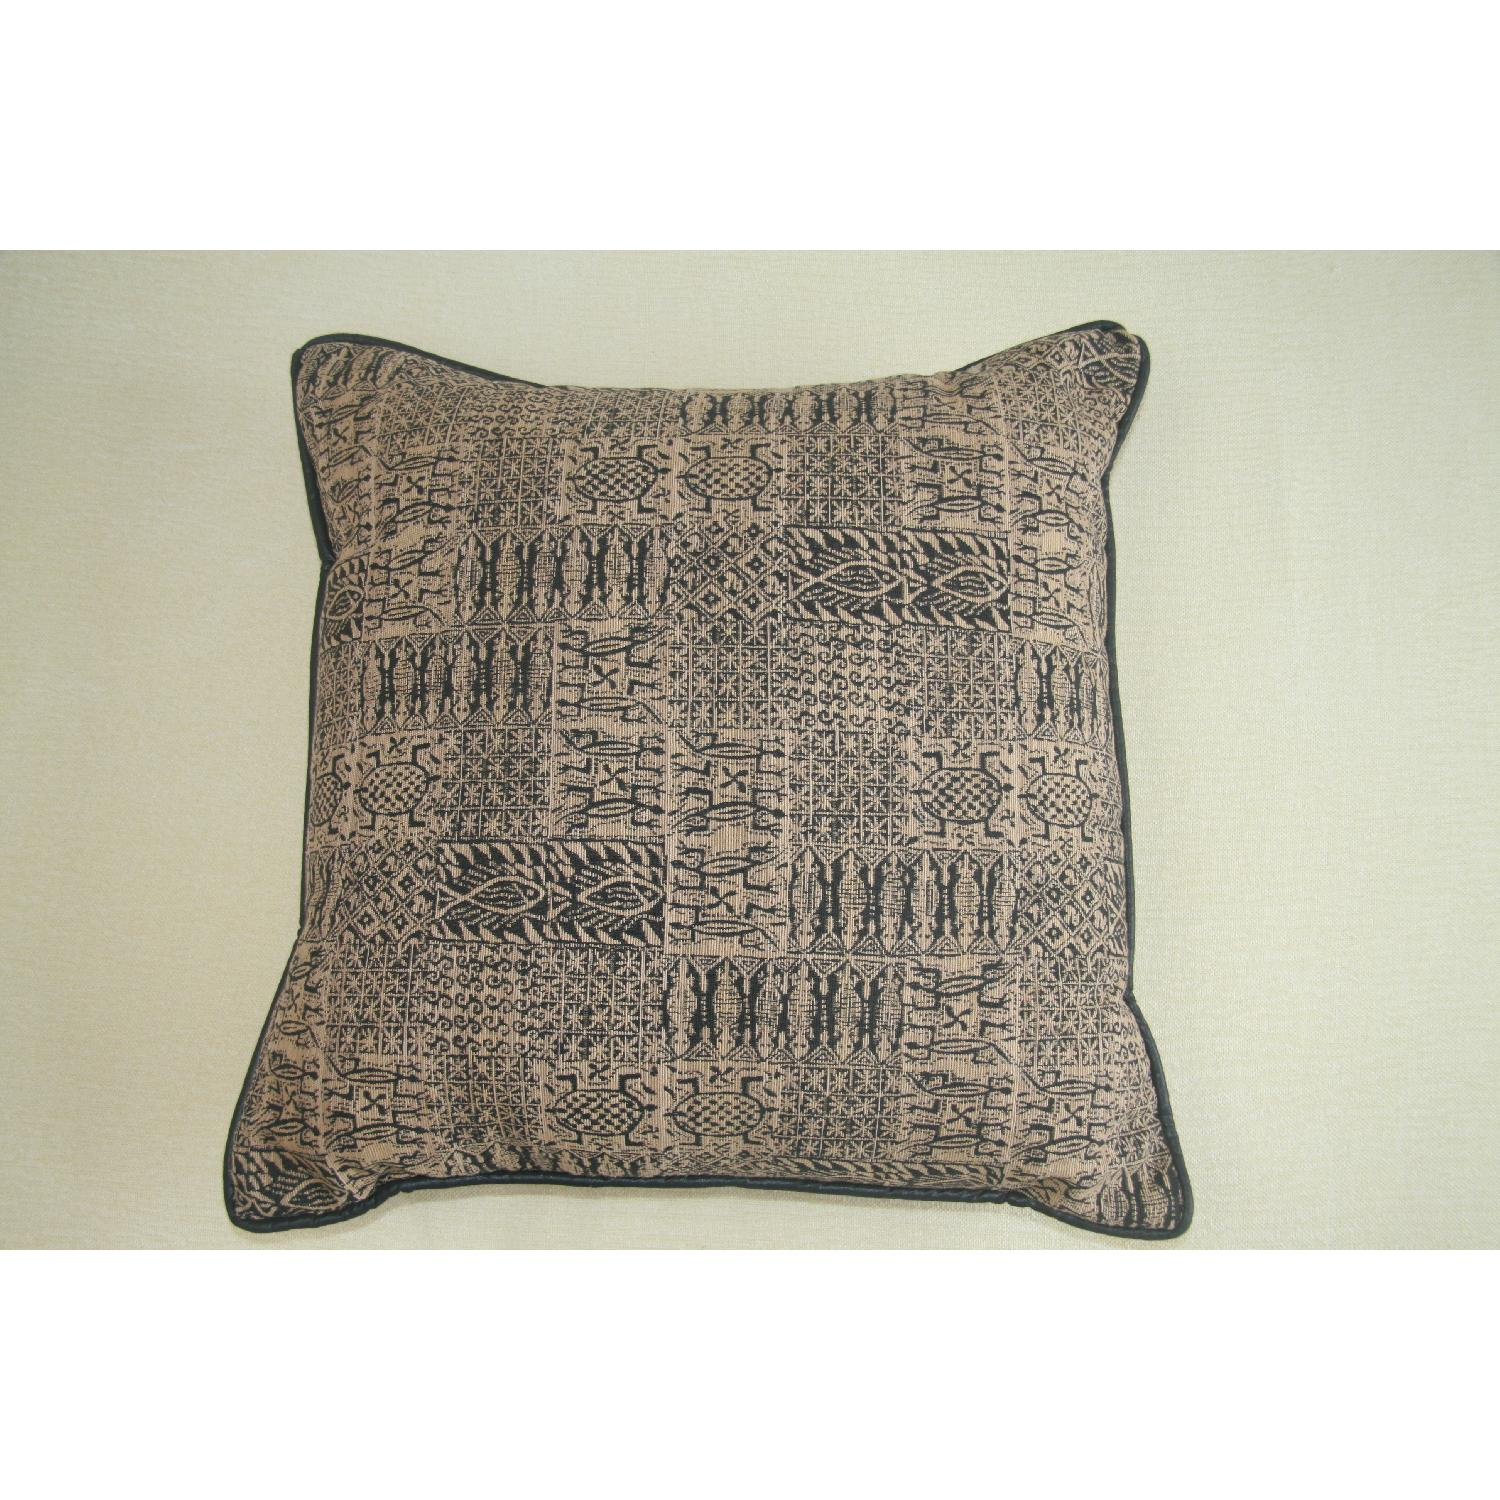 Large Pillows In Black & Gold Print - 2 Available - image-1